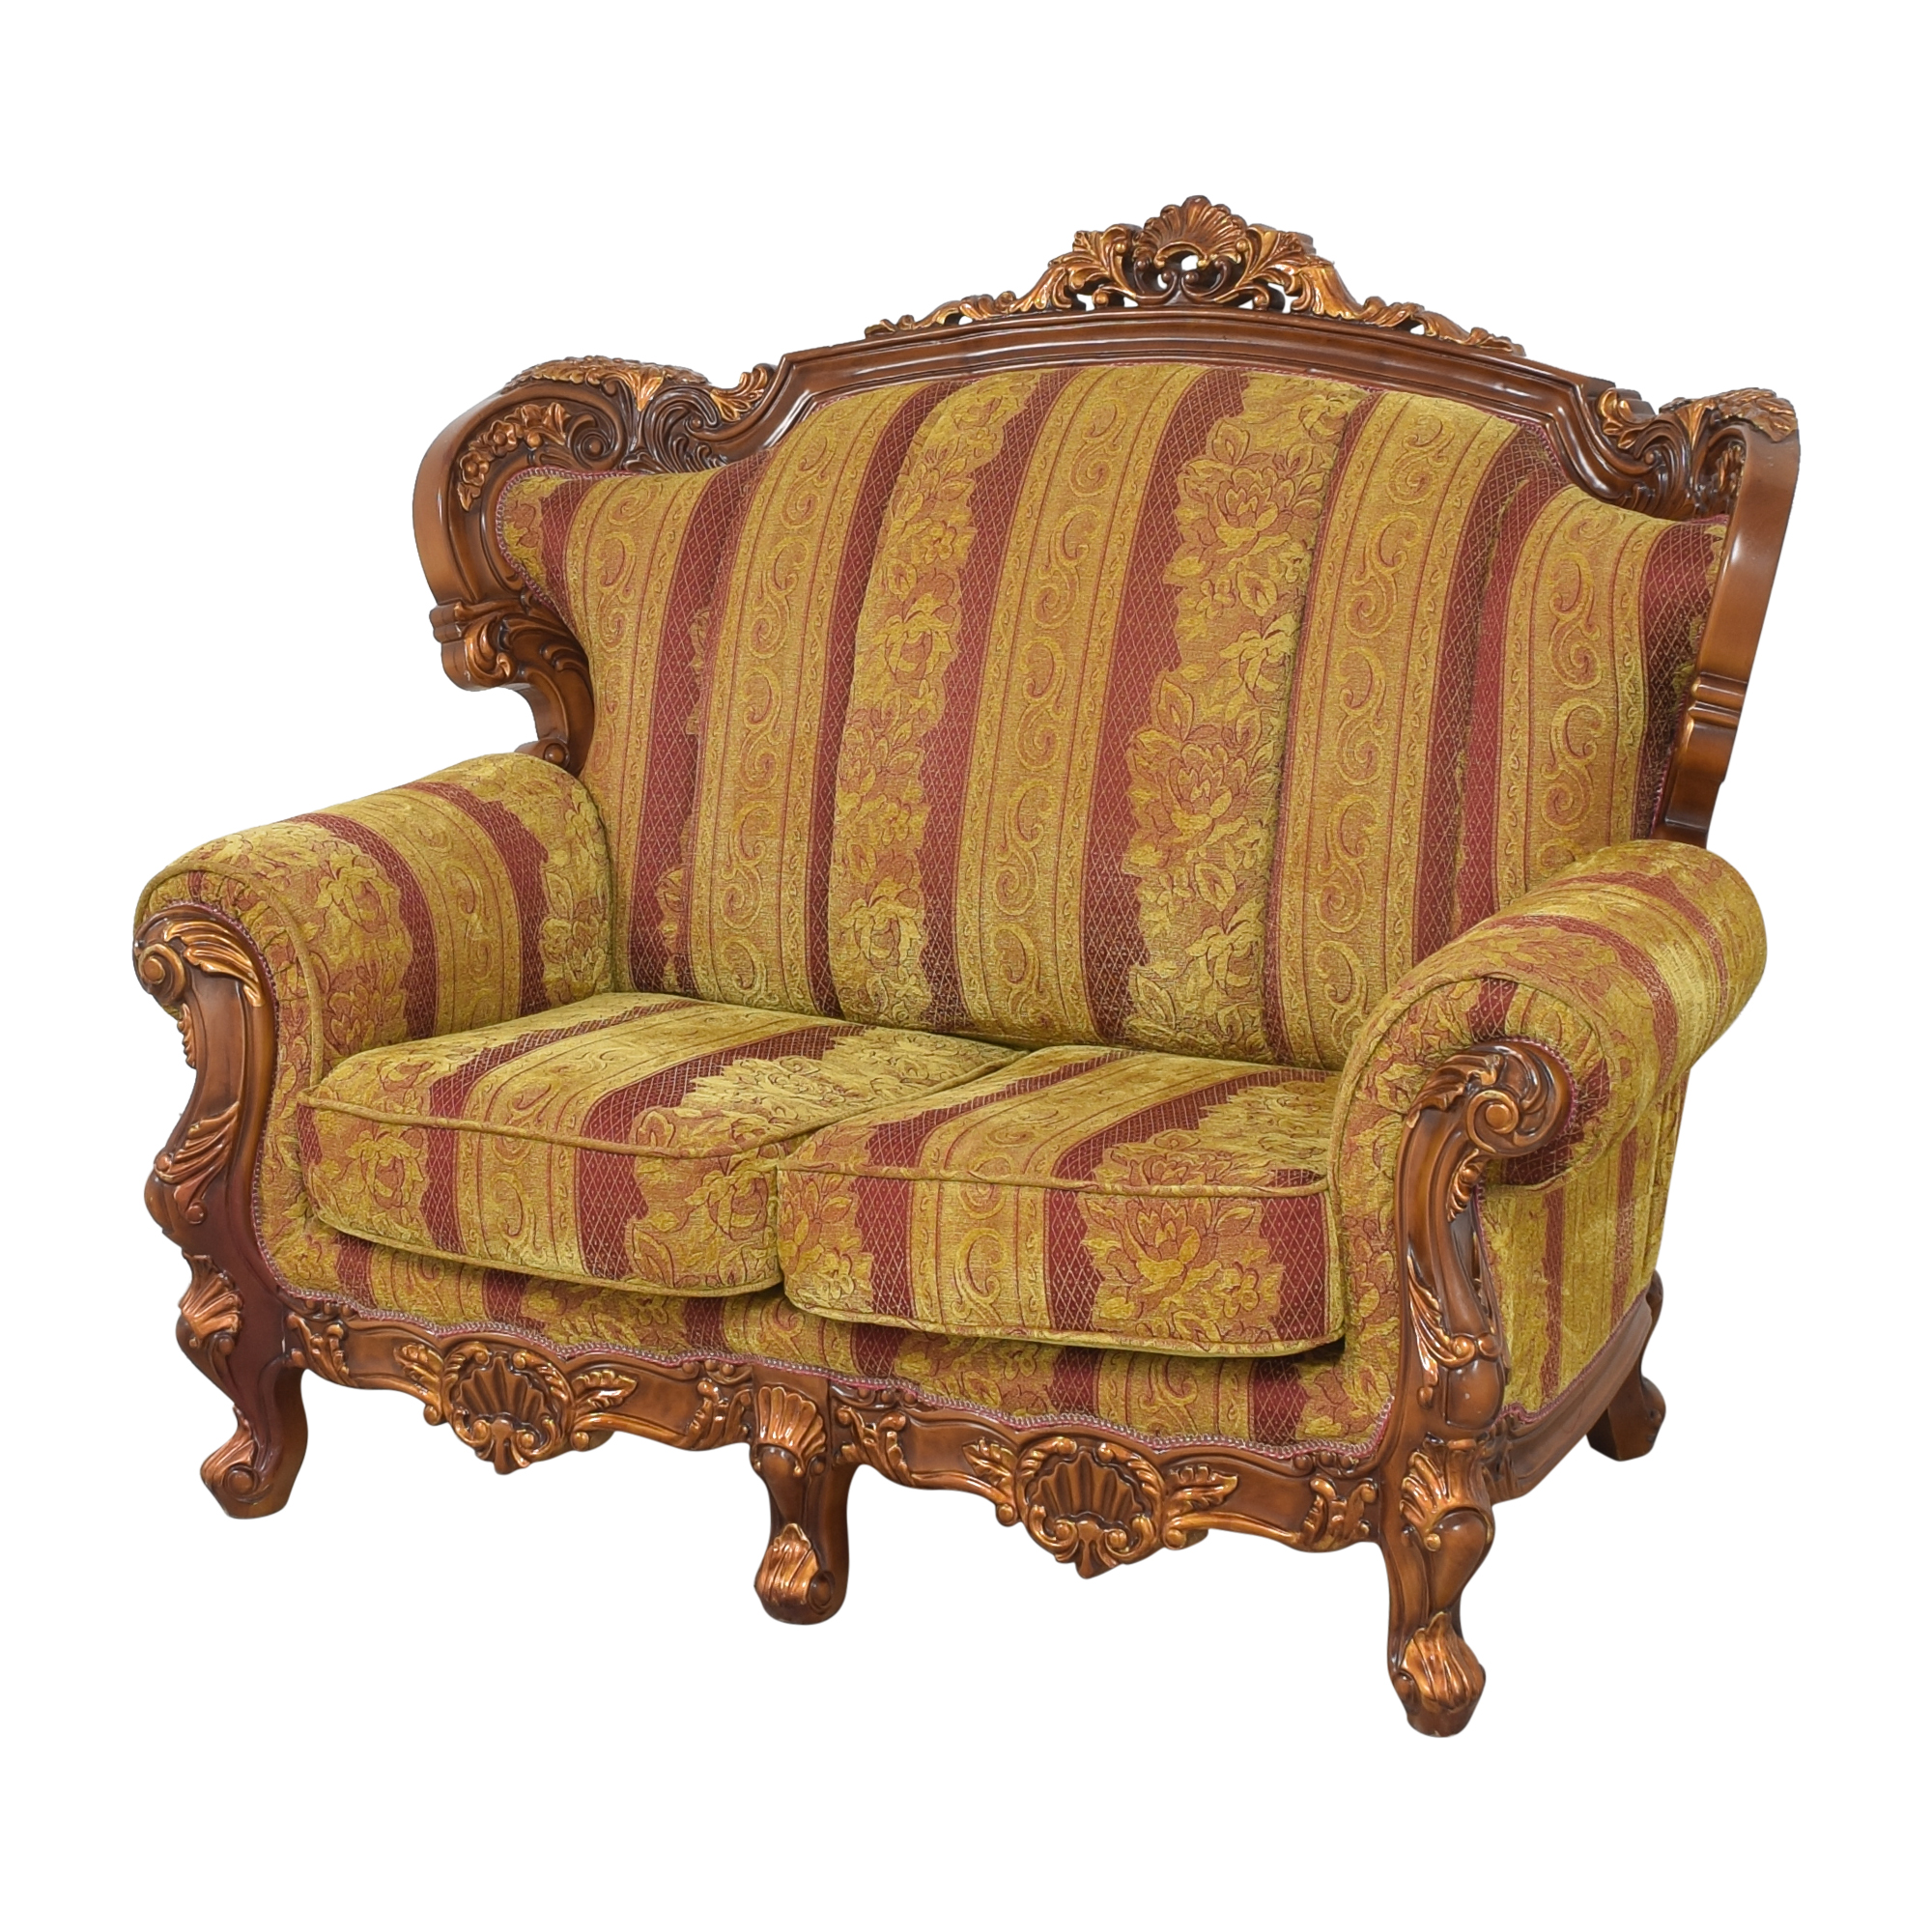 Ornate French-Style Loveseat dimensions